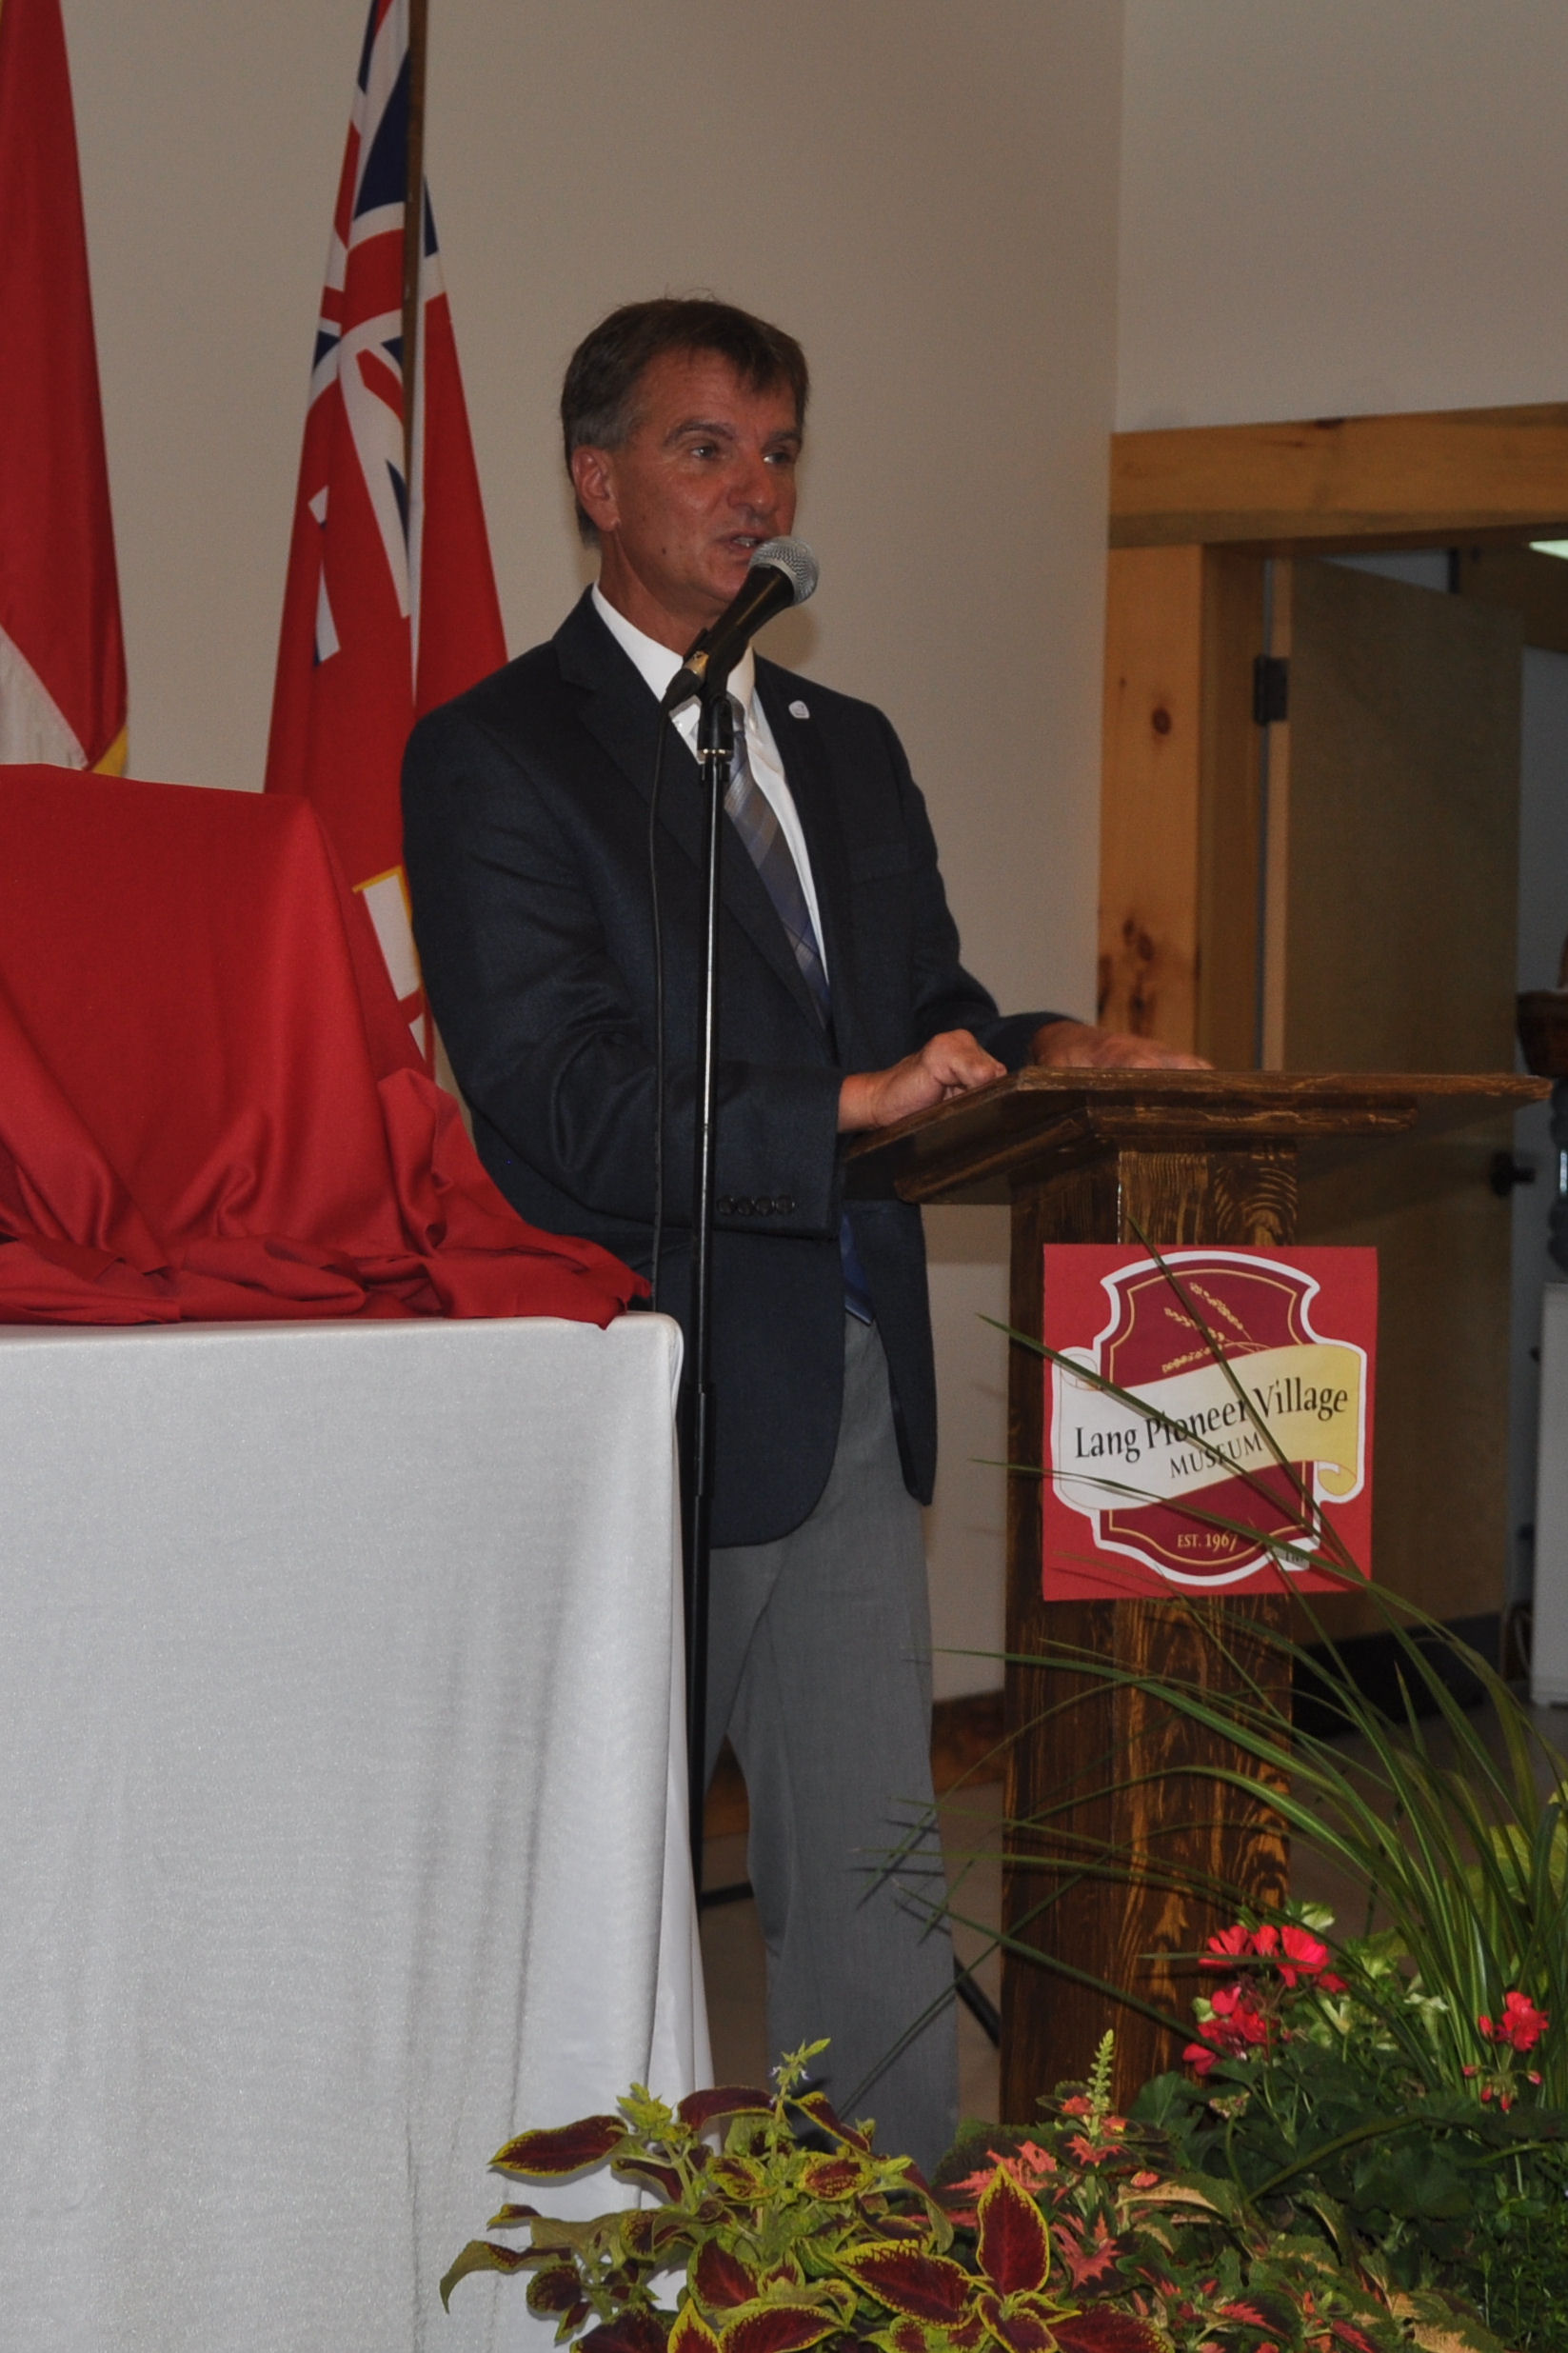 Joe Taylor, Warden of Peterborough County